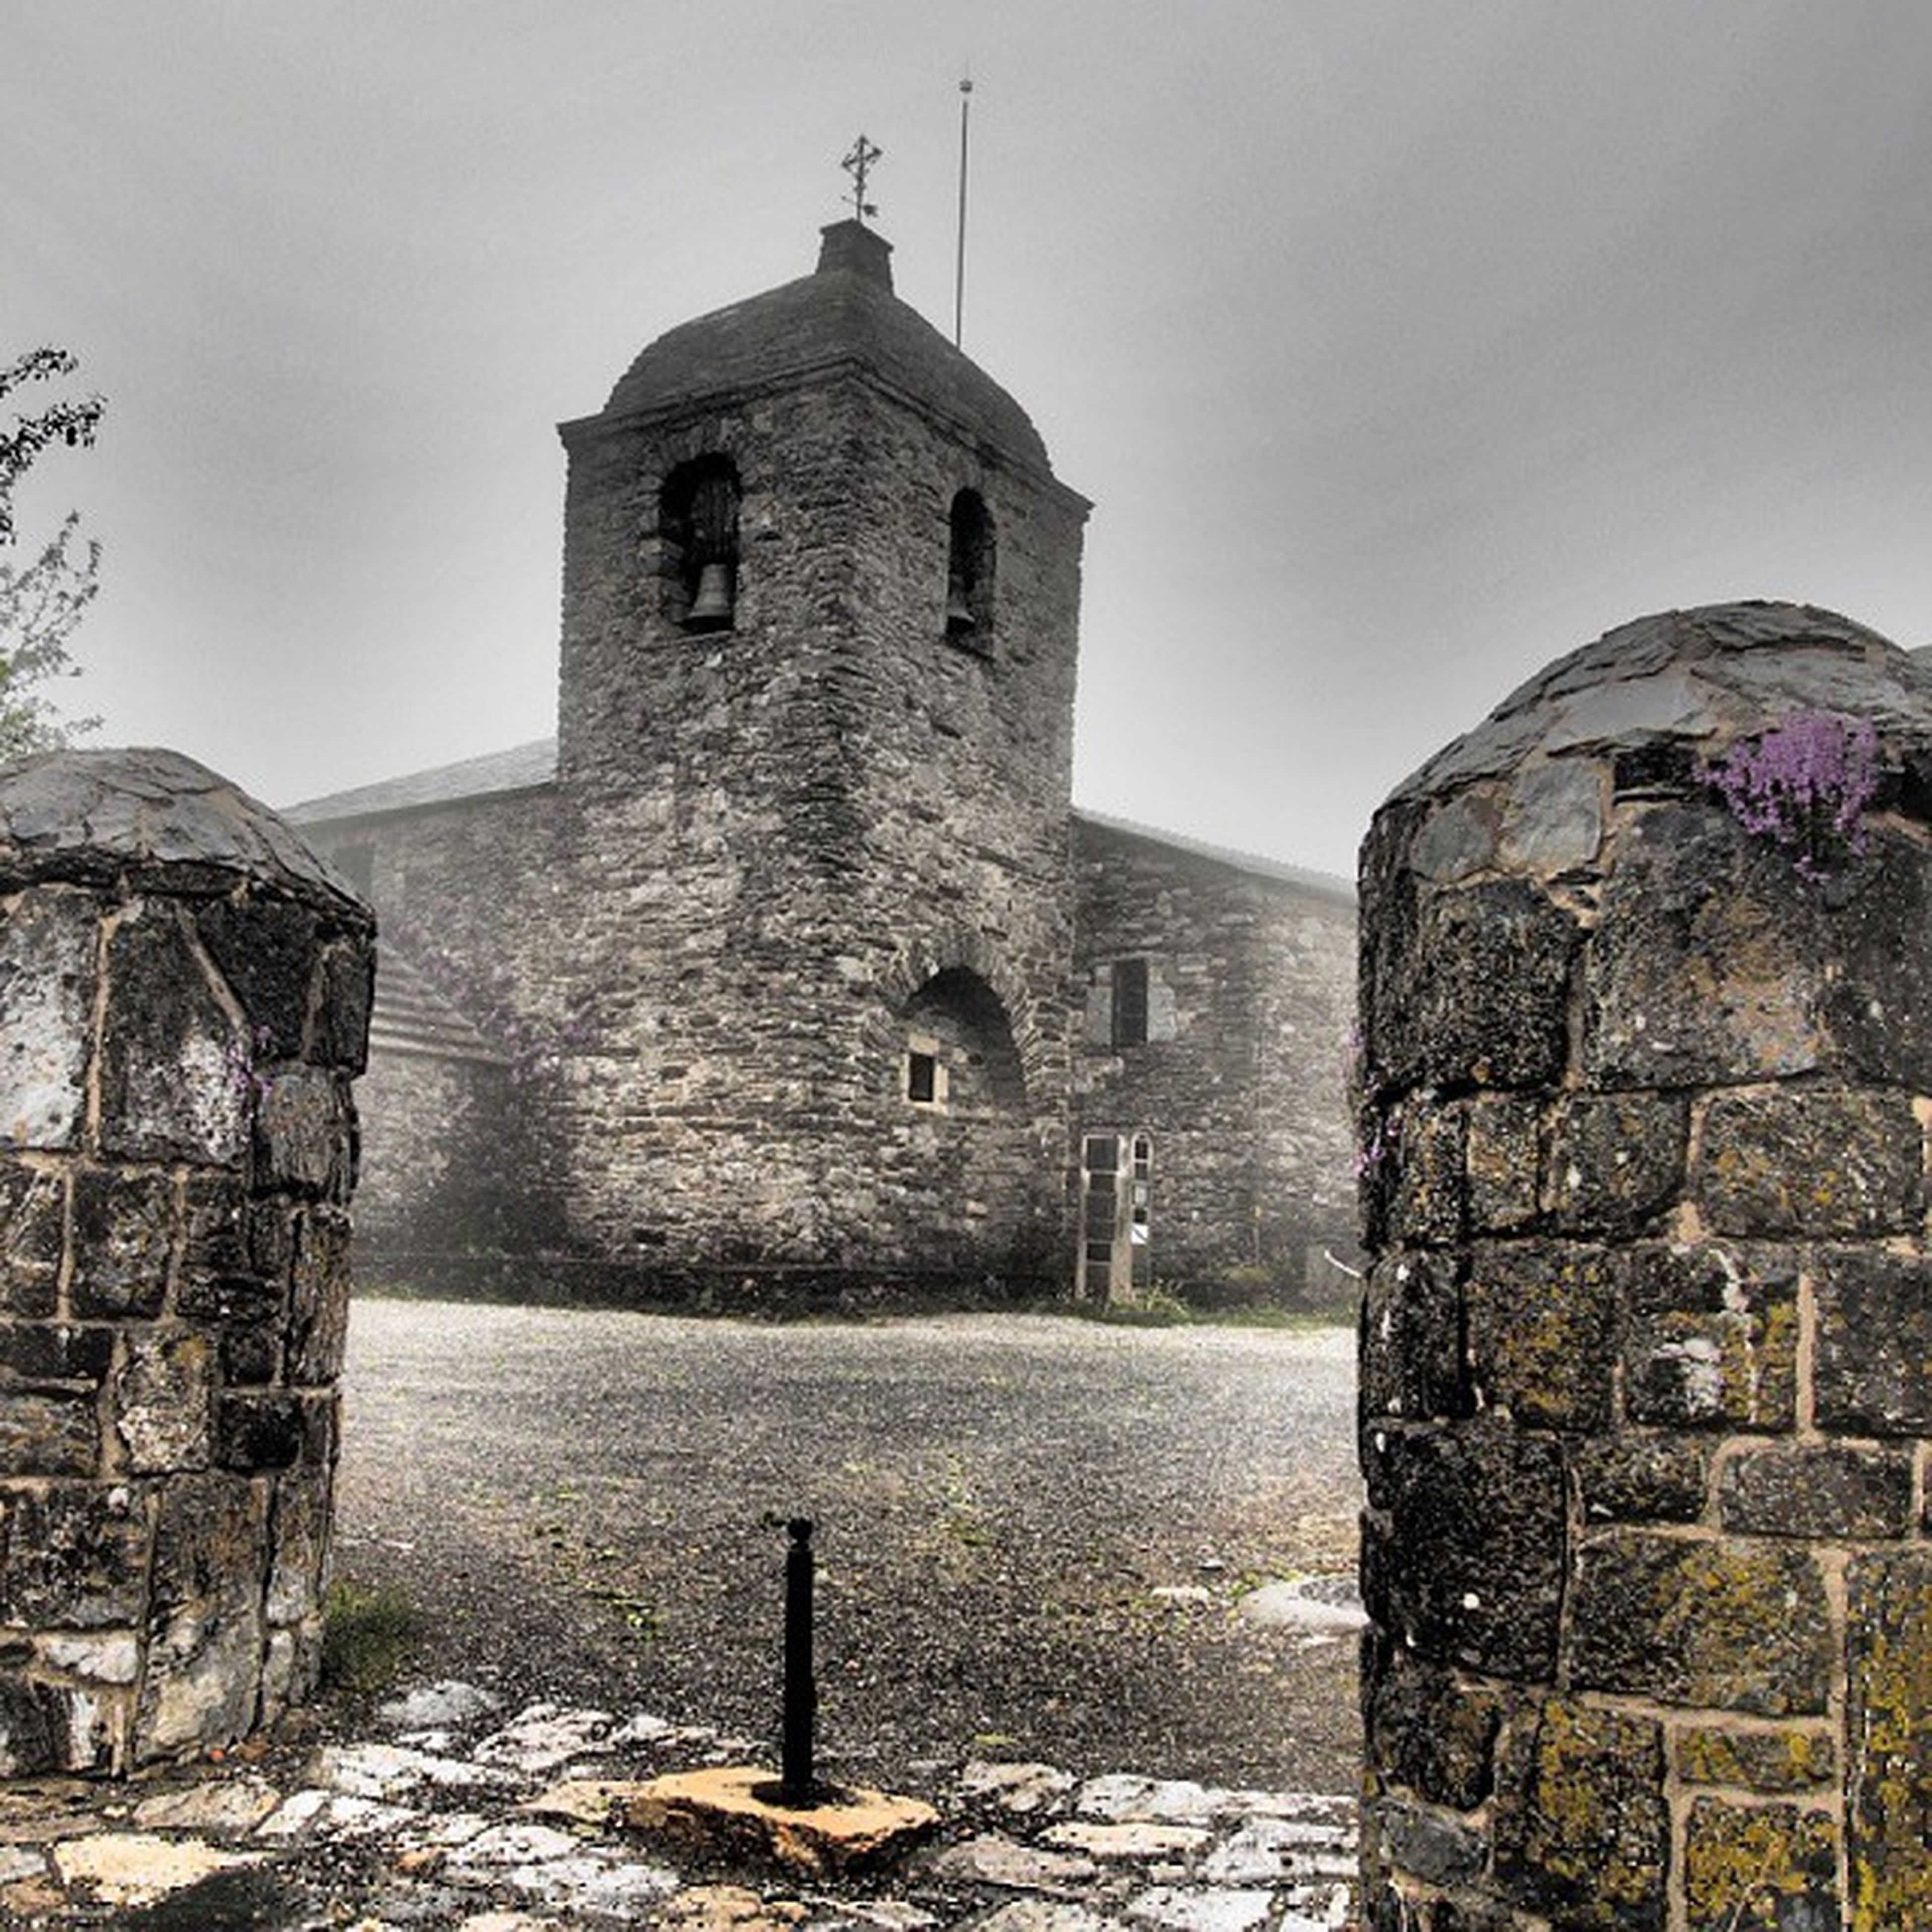 architecture, built structure, building exterior, stone wall, religion, church, history, place of worship, old, sky, spirituality, wall - building feature, day, outdoors, clear sky, the past, the way forward, low angle view